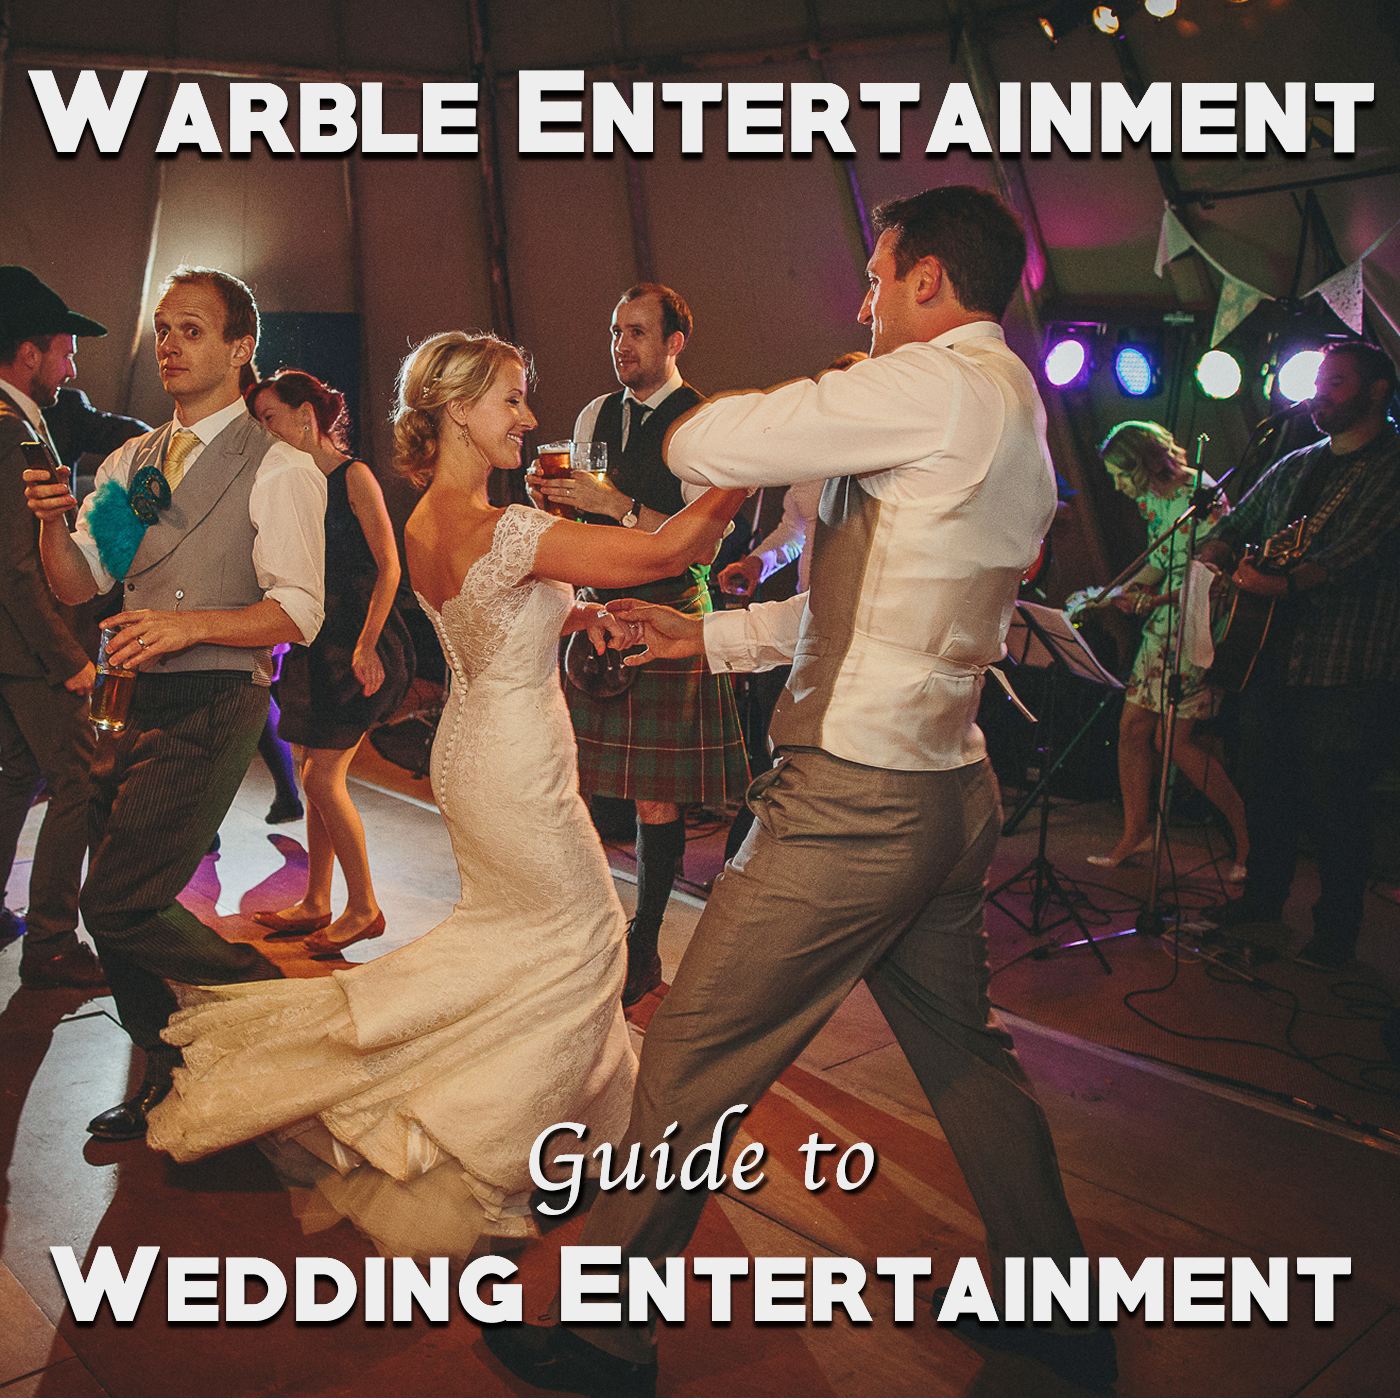 End-your-wedding-with-a-bang